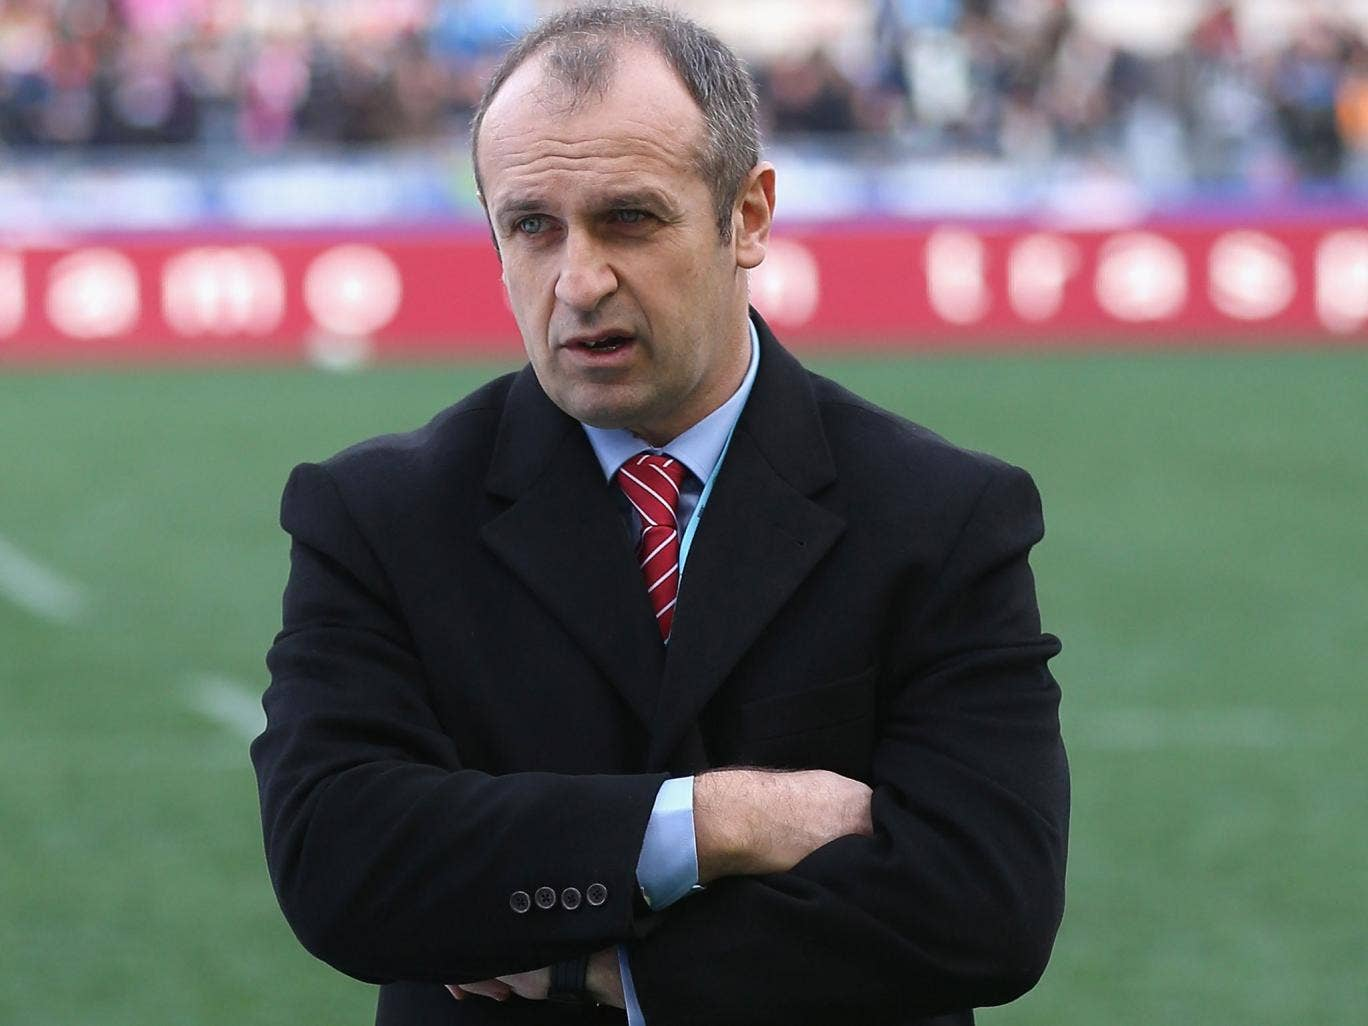 French farce: Coach Philippe Saint-André